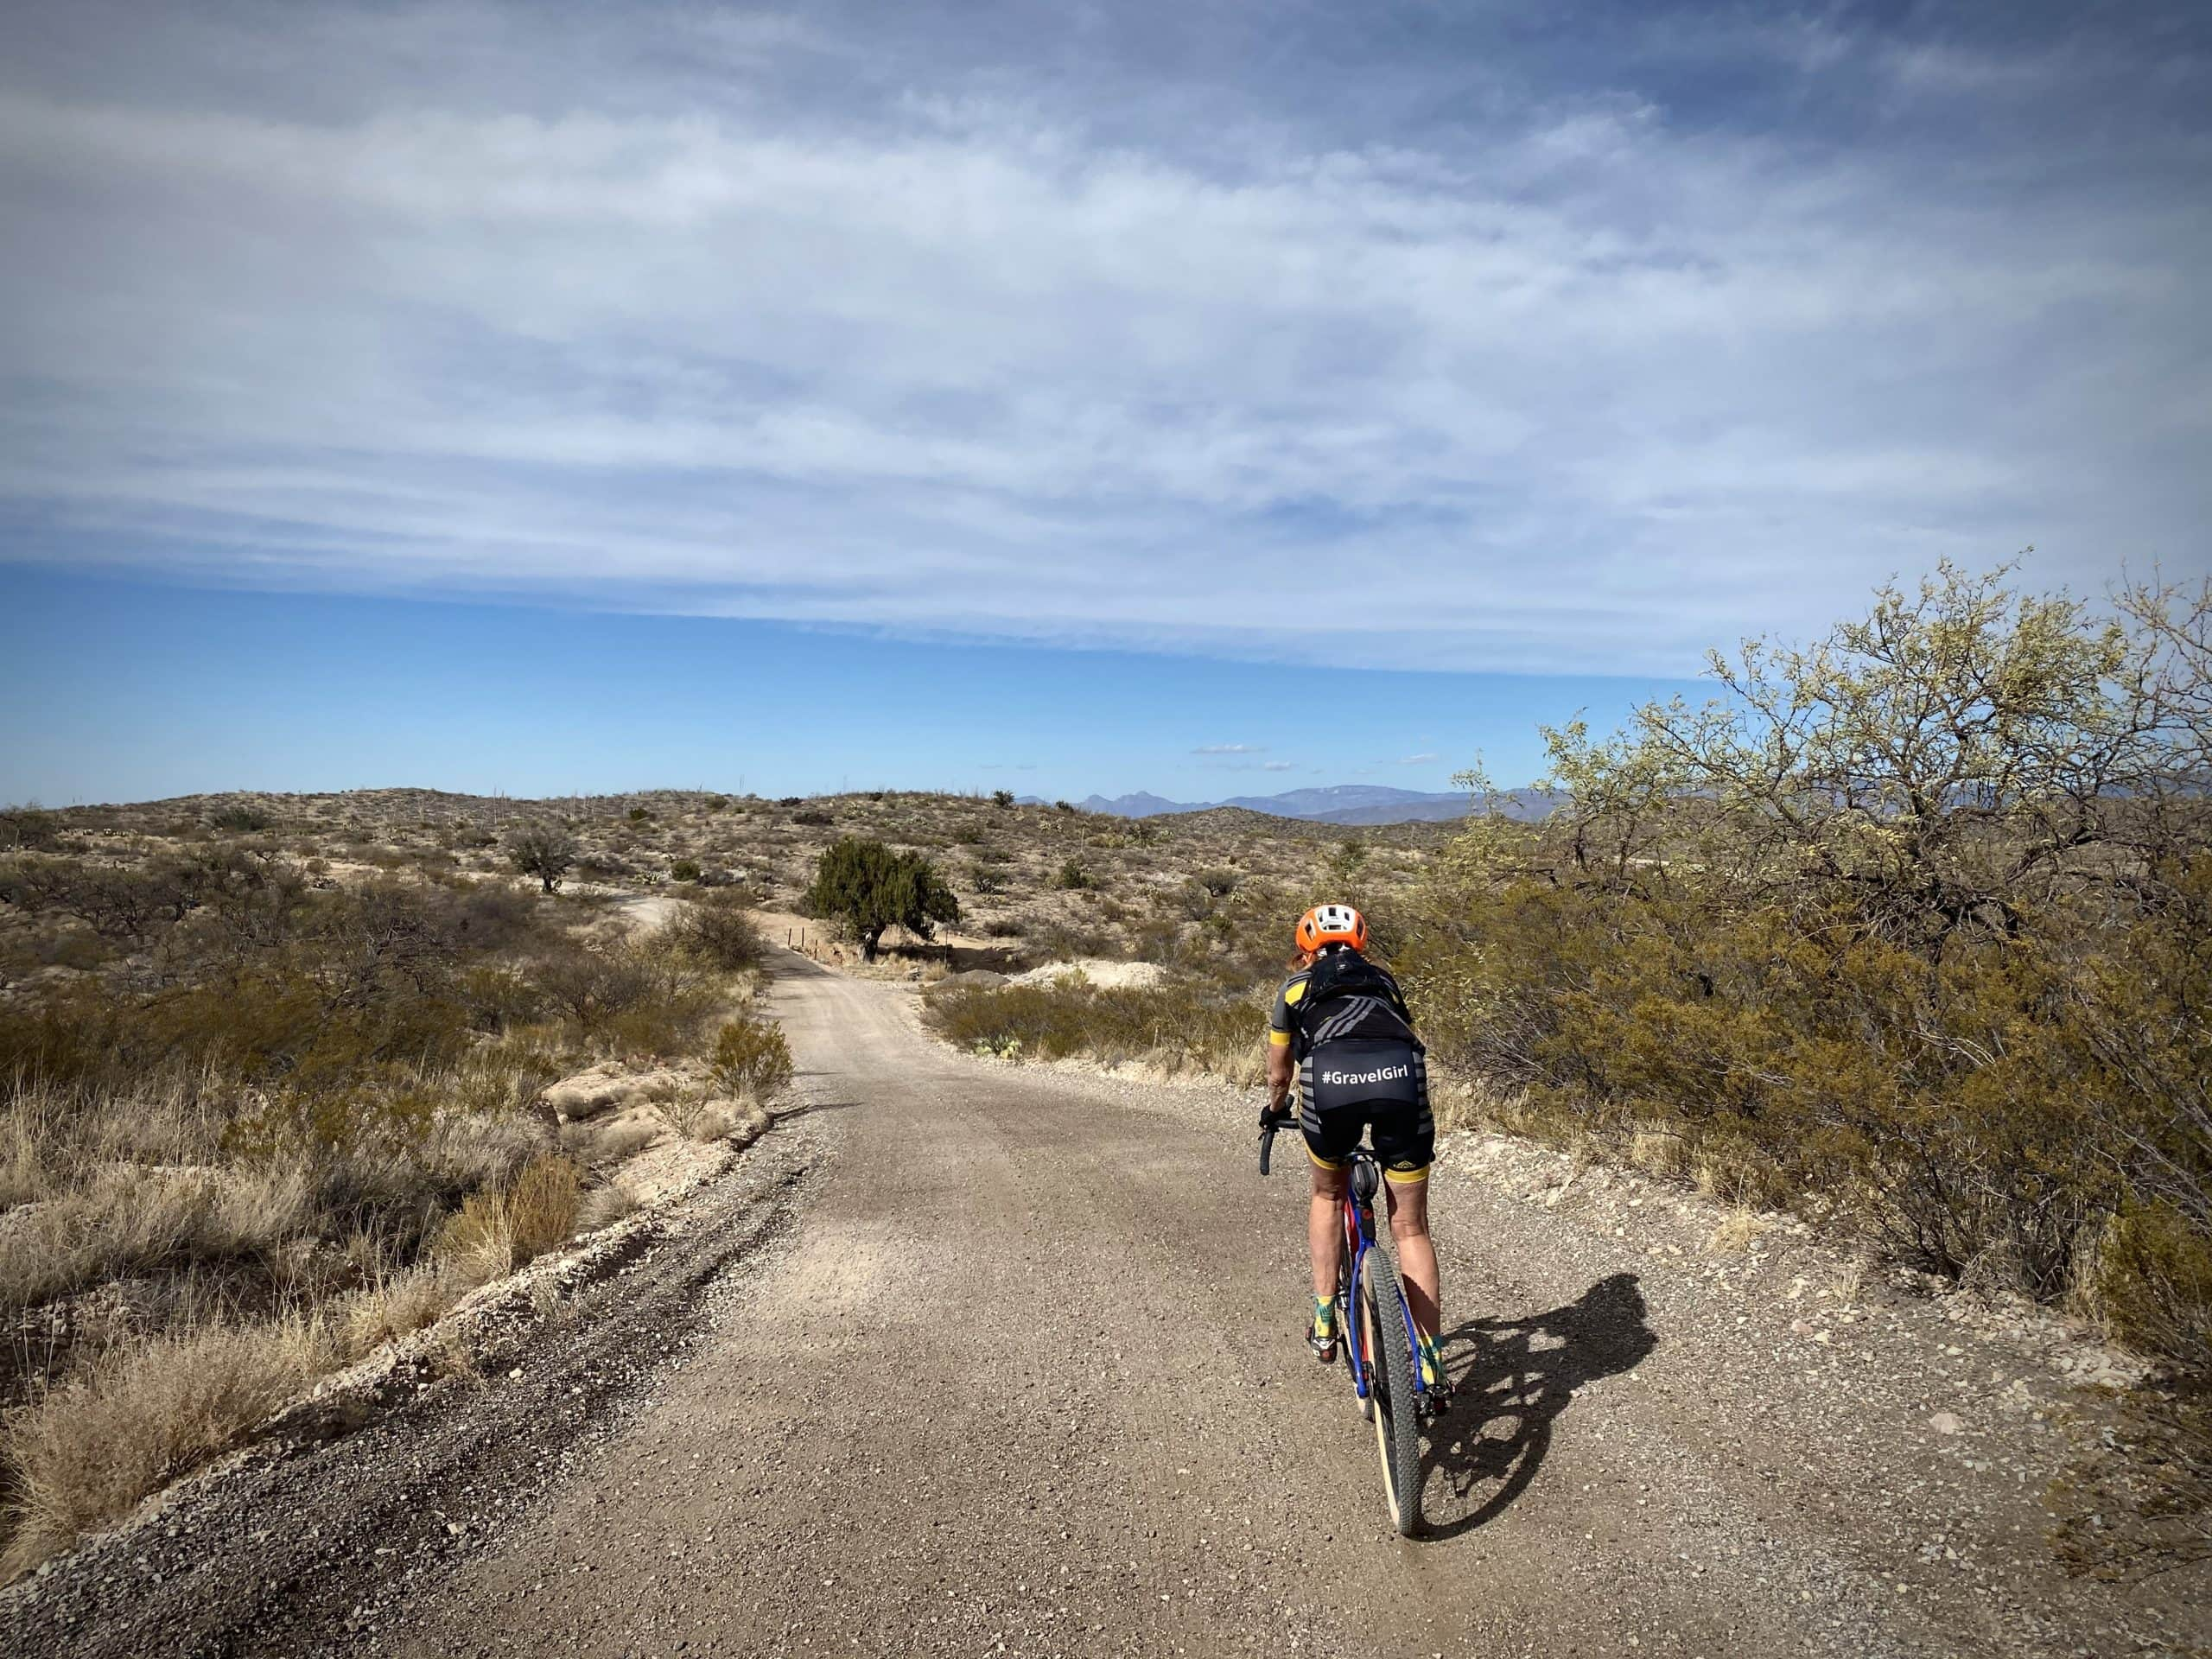 Gravel Girl on unpaved road near the Empire Mountains in Arizona.